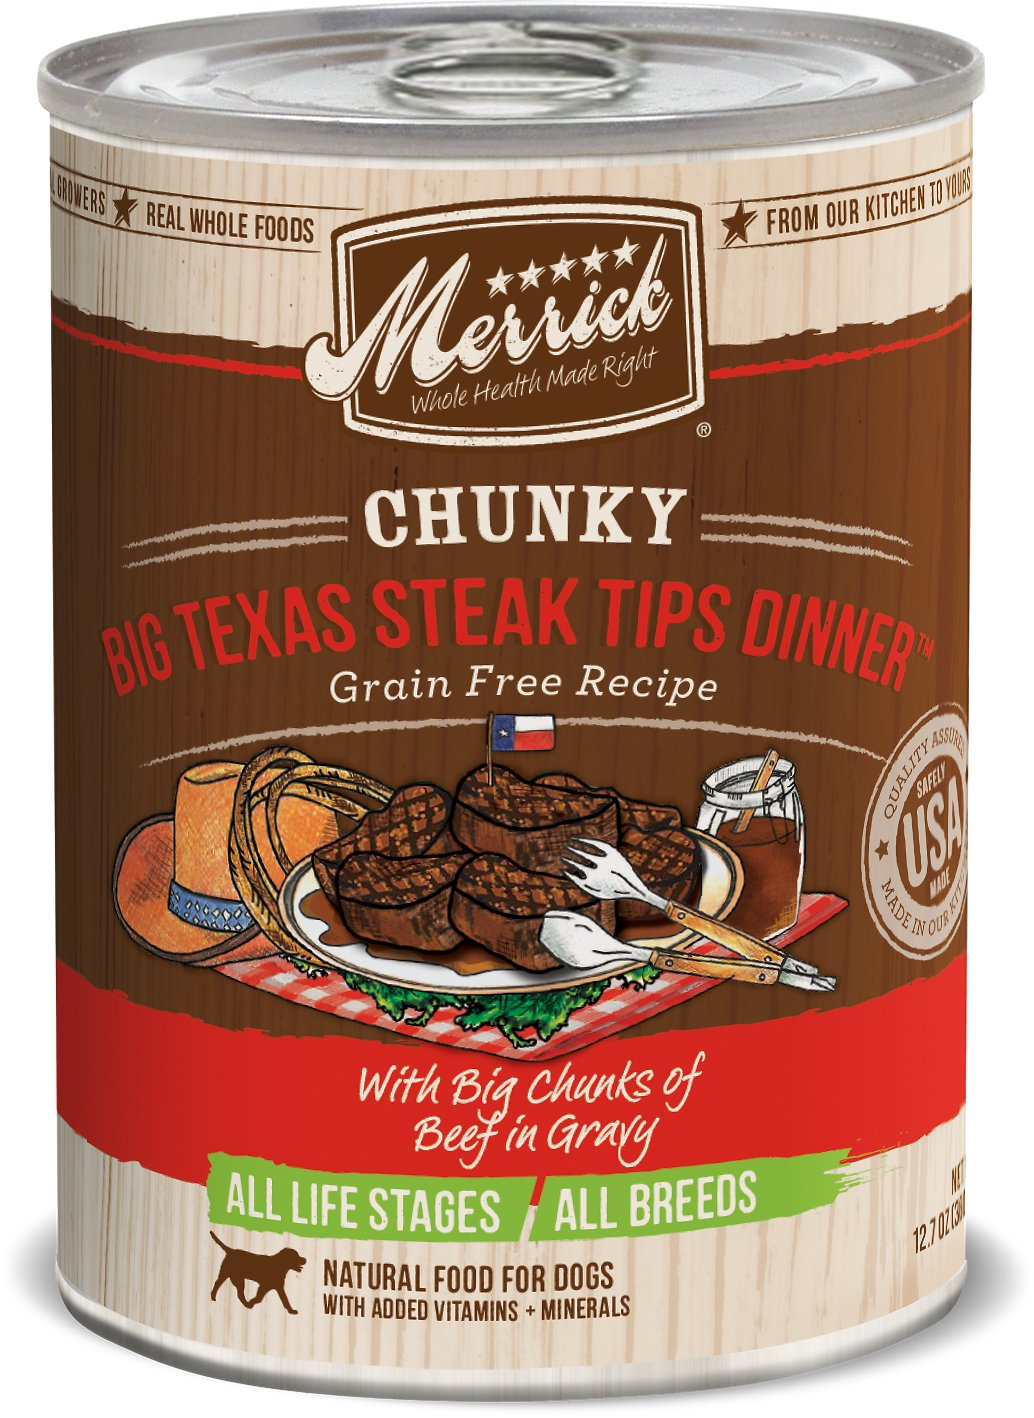 Merrick Chunky Big Texas Steak Tips Dinner 12.7oz 12 Count Case